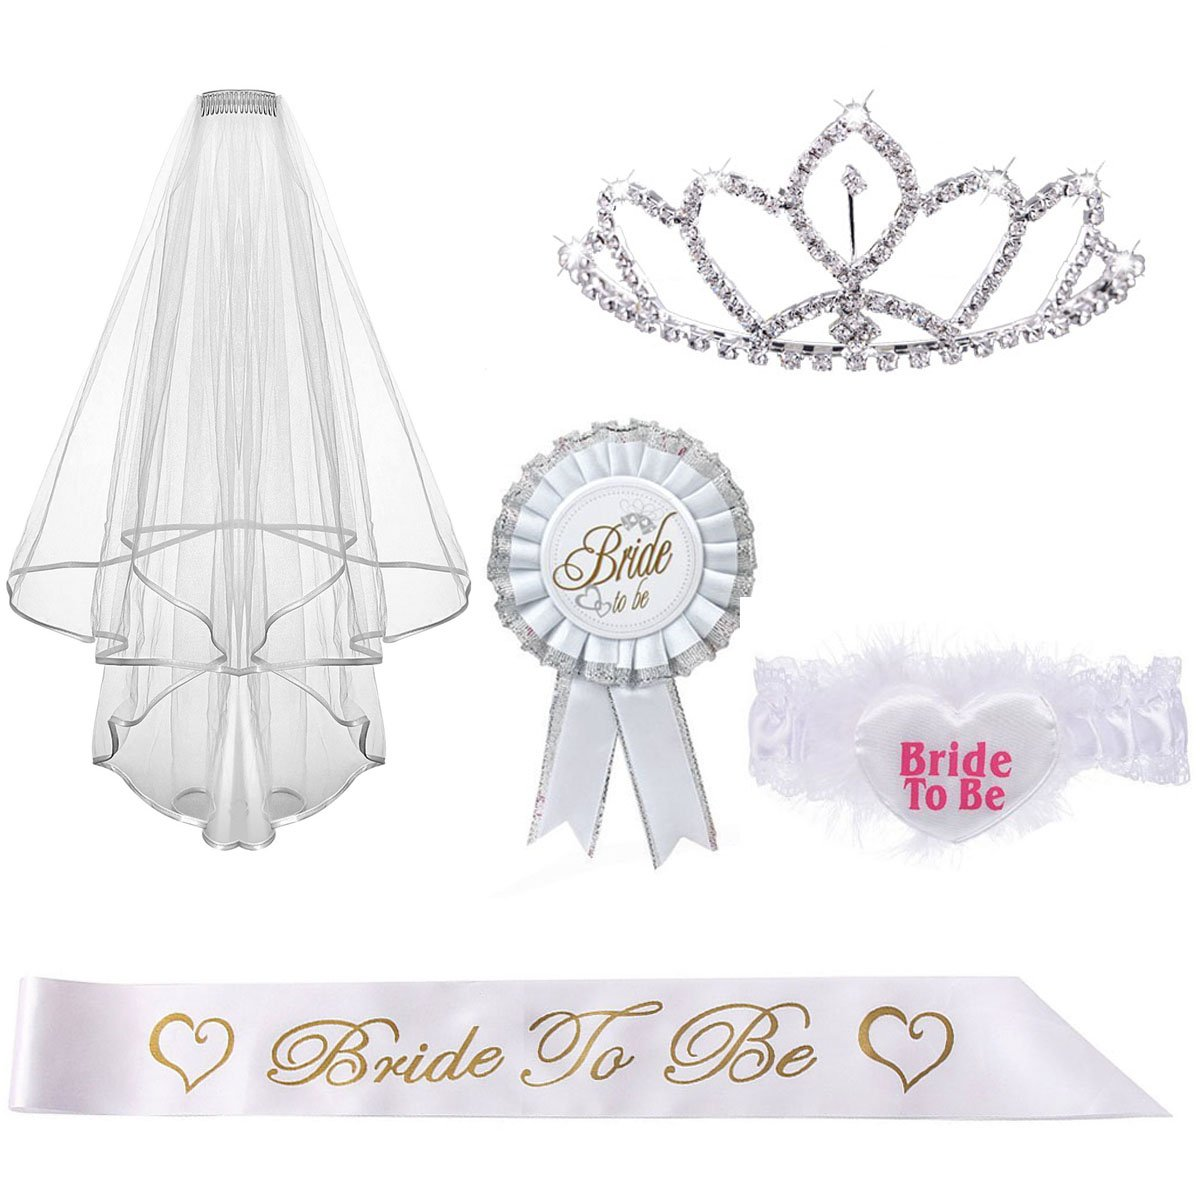 Kyerivs Bride to be Decoration Set for Hen Night Party, Rhinestone Tiara, Bridal Wedding Veil, Bride To Be Sash, Rosette Badge and Garter Bride to be Set